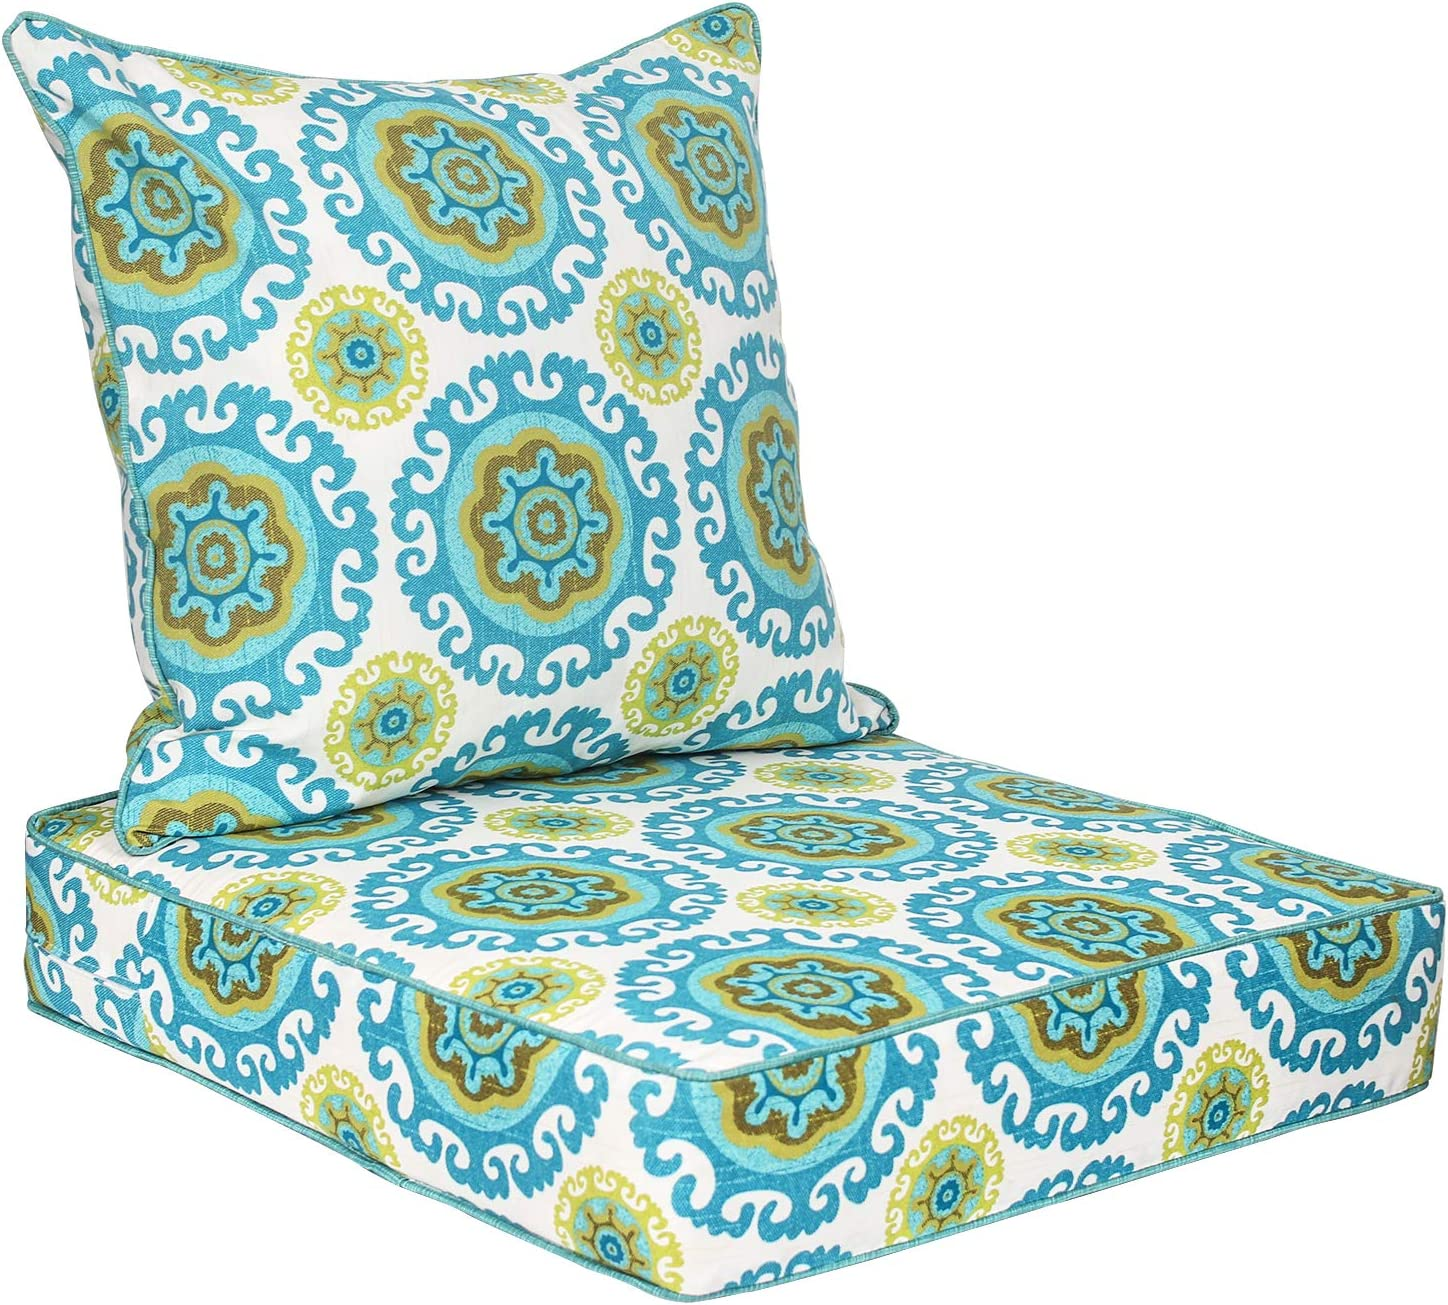 Deep Seat Cushions, Patio Seat and Back Cushion Sets, Outdoor Chair Cushions with Removable Covers for Armchair, Rattan Wicker Chair, Dining Chair, Garden Furniture- Floral 2-Piece Set